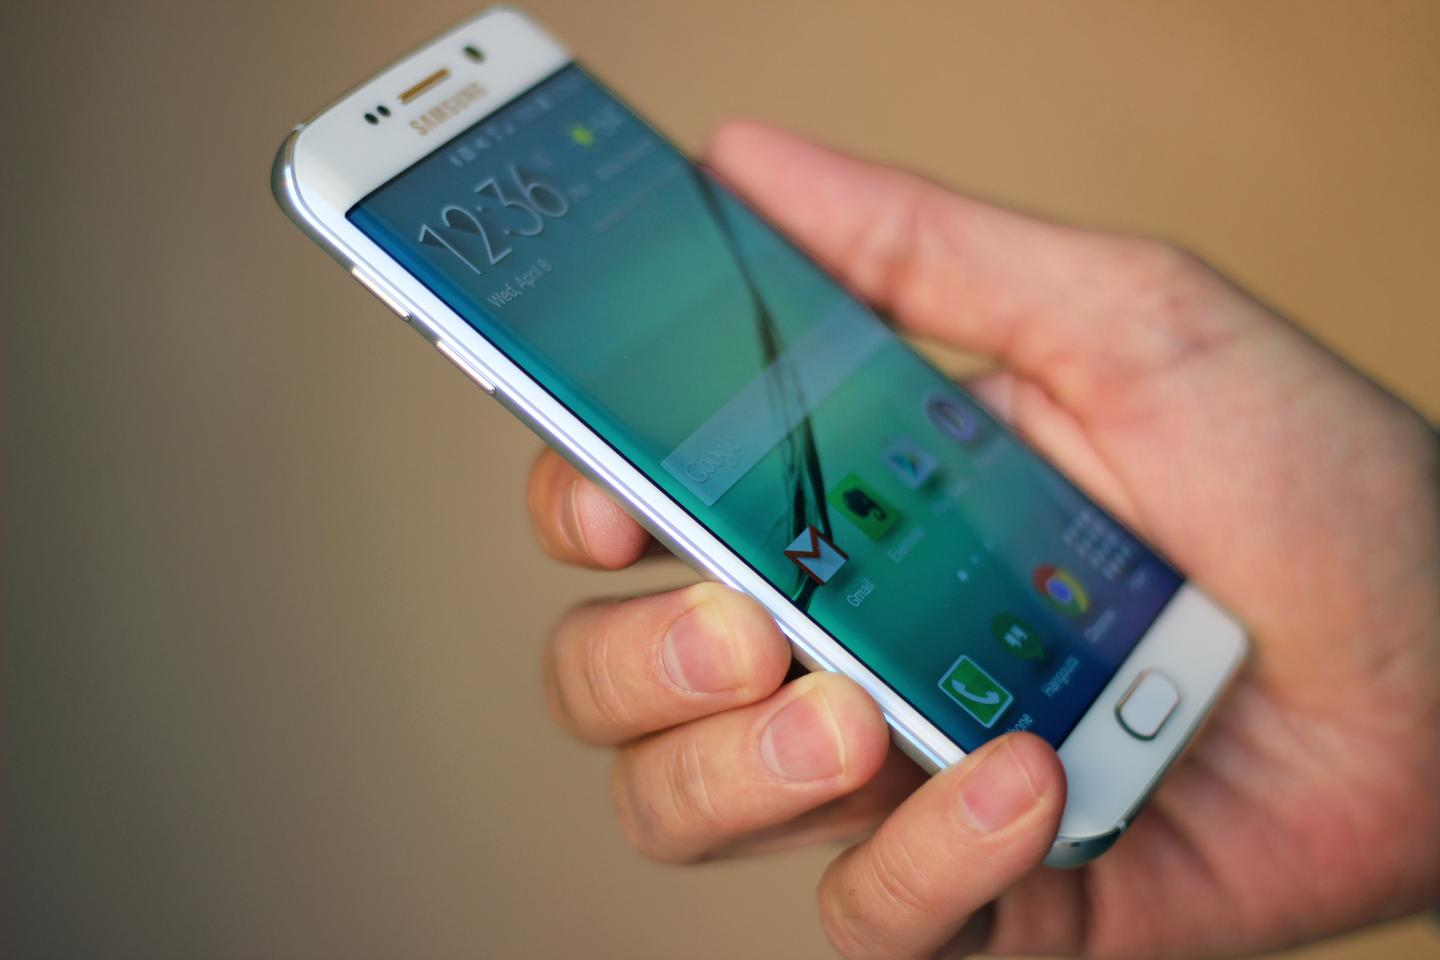 The Galaxy S6 edge is 4 percent lighter than the standard Galaxy S6, but both feel pleasantly airy in hand (Photo: Will Shanklin/Gizmag.com)